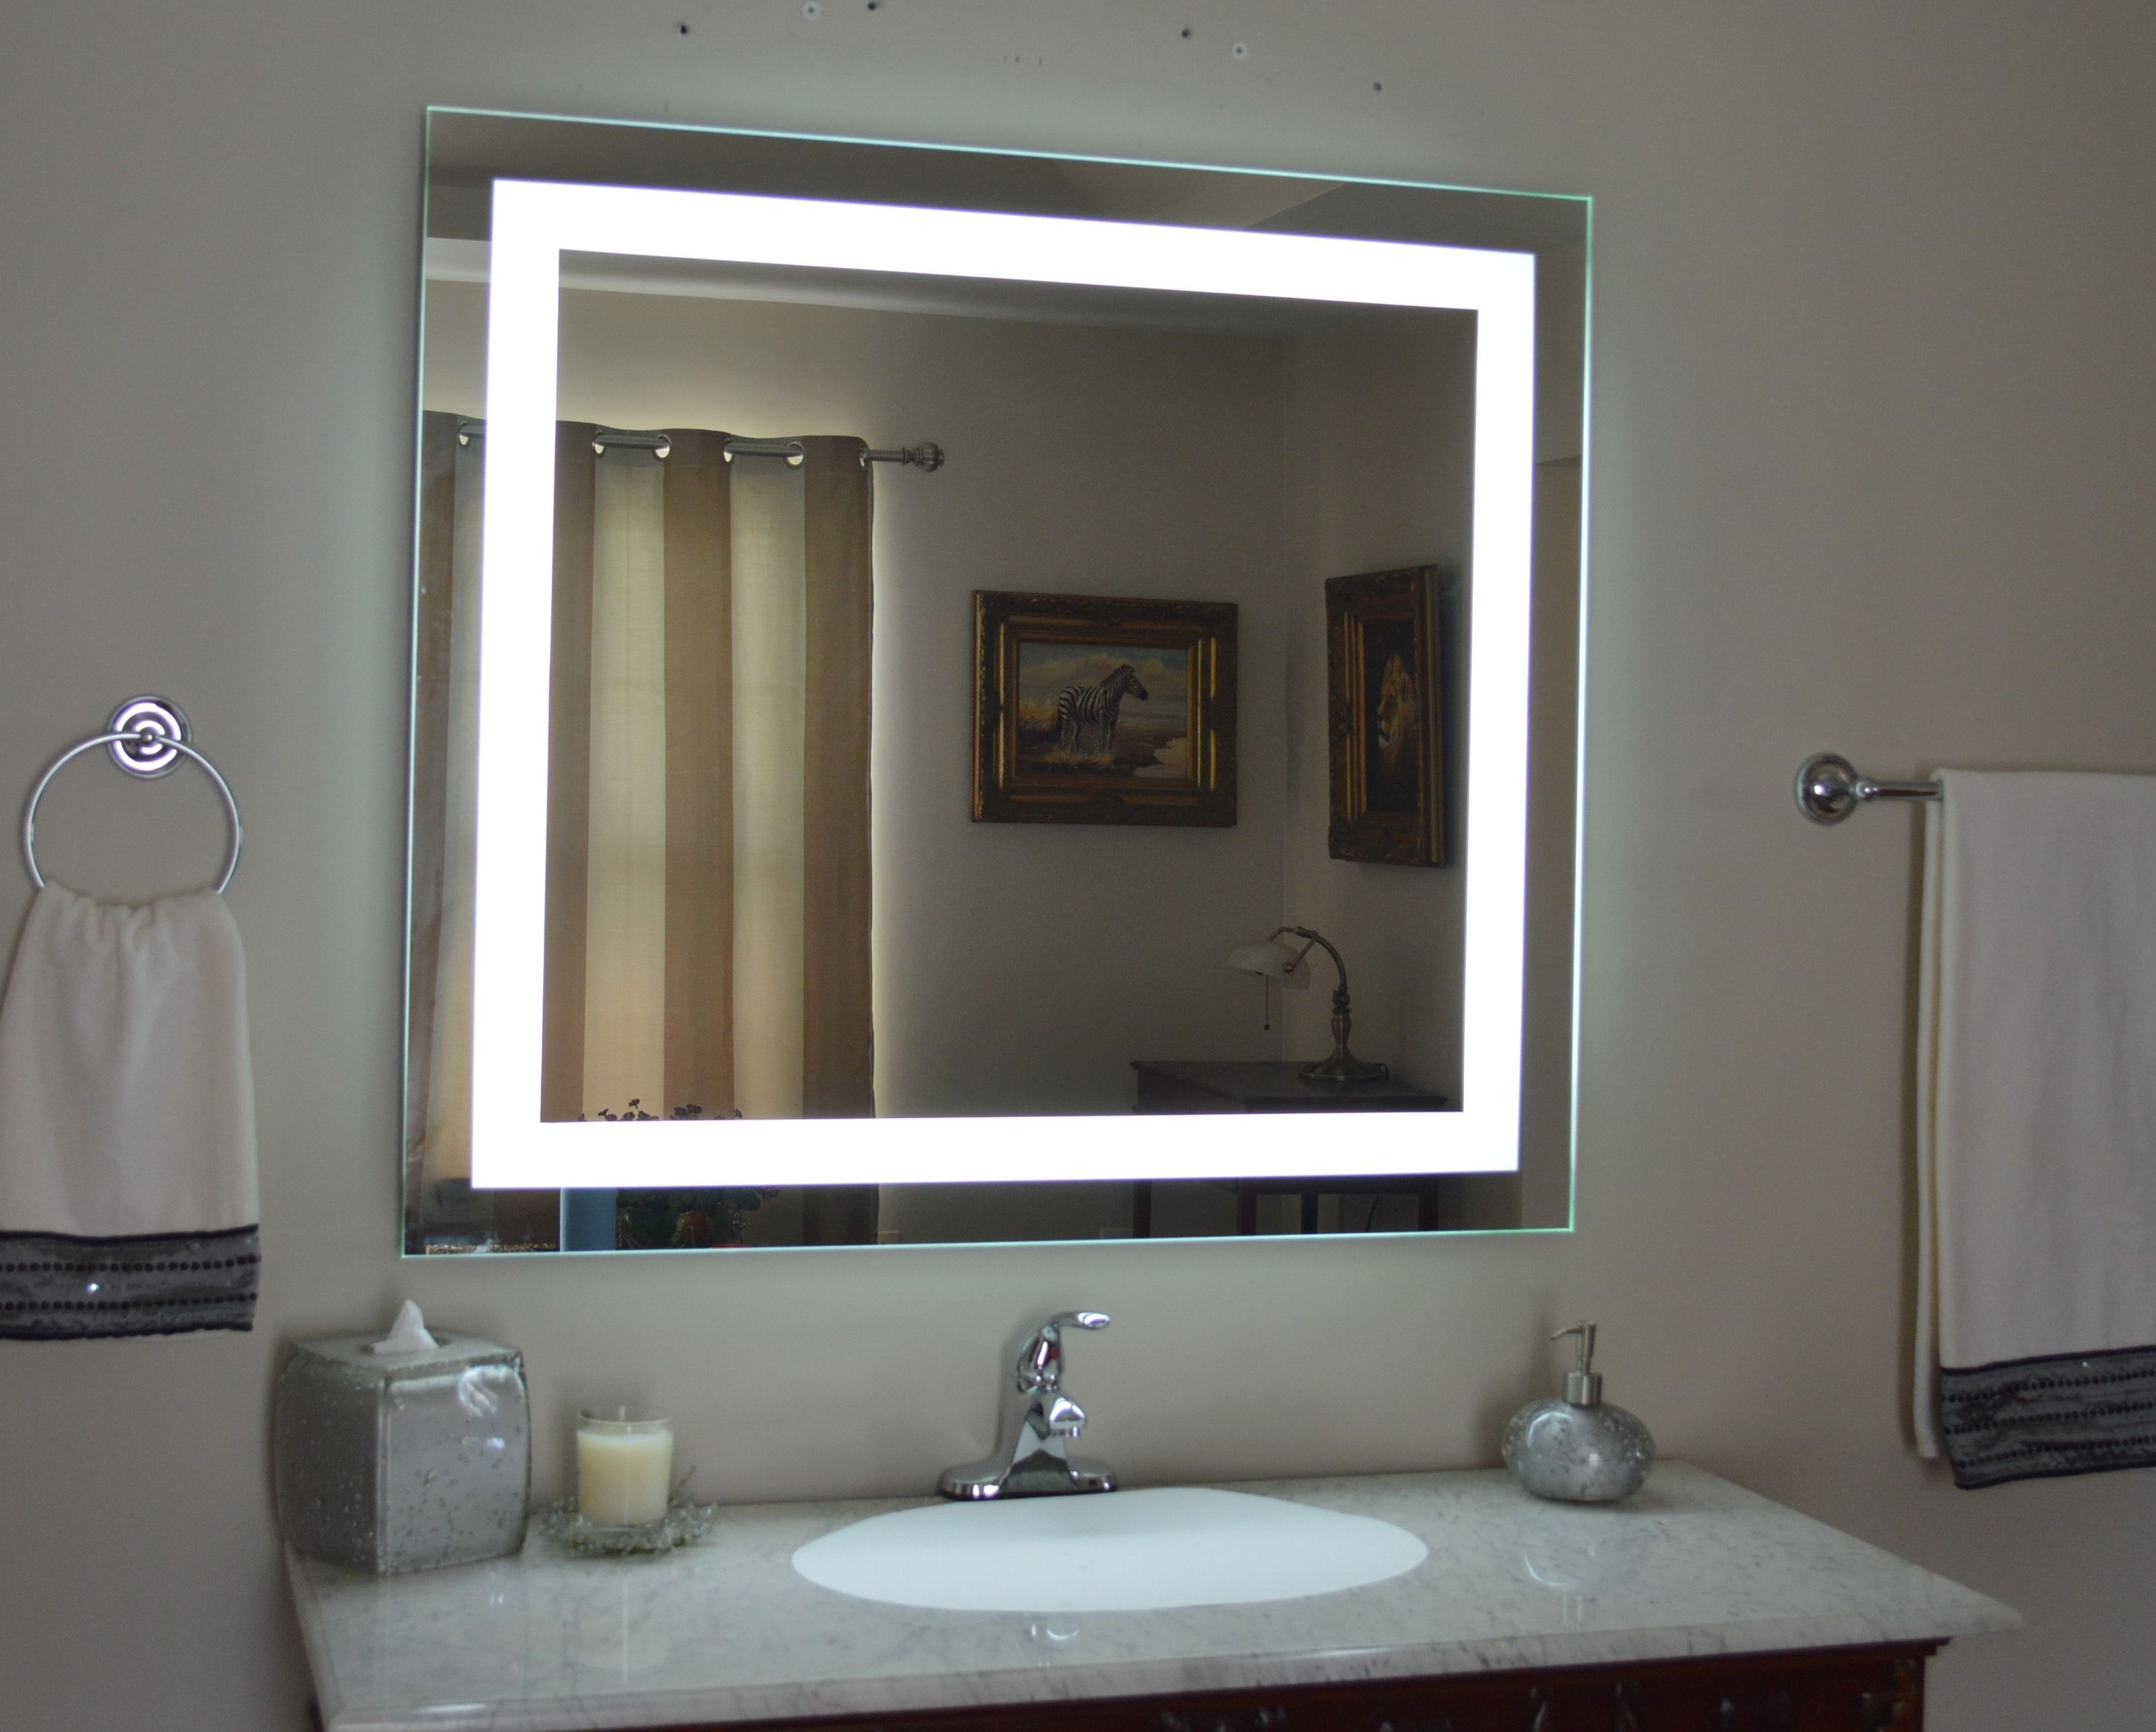 Best wall mounted lighted vanity mirror httpdrrw pinterest best wall mounted lighted vanity mirror mozeypictures Images